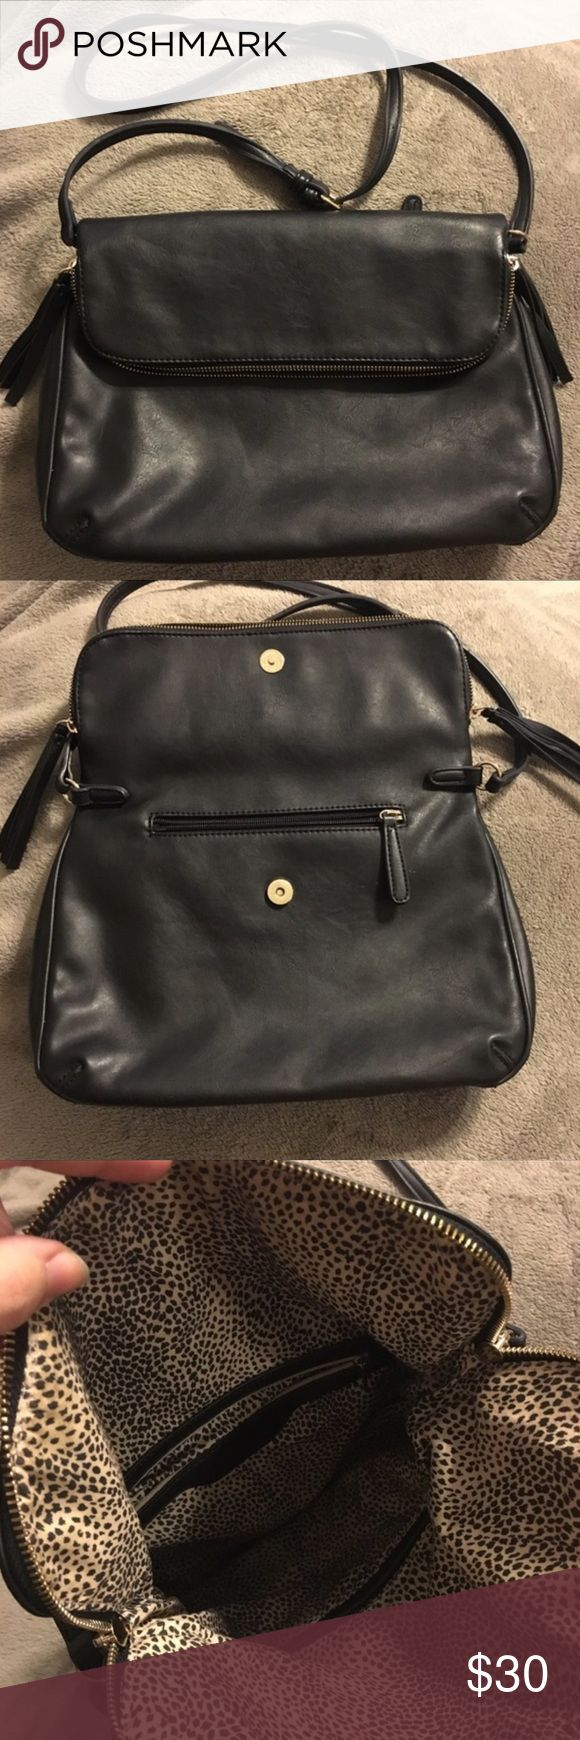 Francesca's Blck Foldover Crossbody Bag Gorgeous black foldover Crossbody. 1 zipper in the front, 1 on the back, and the main zippered compartment with 2 pockets inside. Used for a few weeks but good condition. My kitty scratched the bag but it's covered when the flap is down, pictured in 4th photo, and there is also some rubbing on the bottom corner - also pictured (and it looks worse in pictures than in person - it's pretty hard to notice). Adjustable Crossbody strap. Perfect for every…